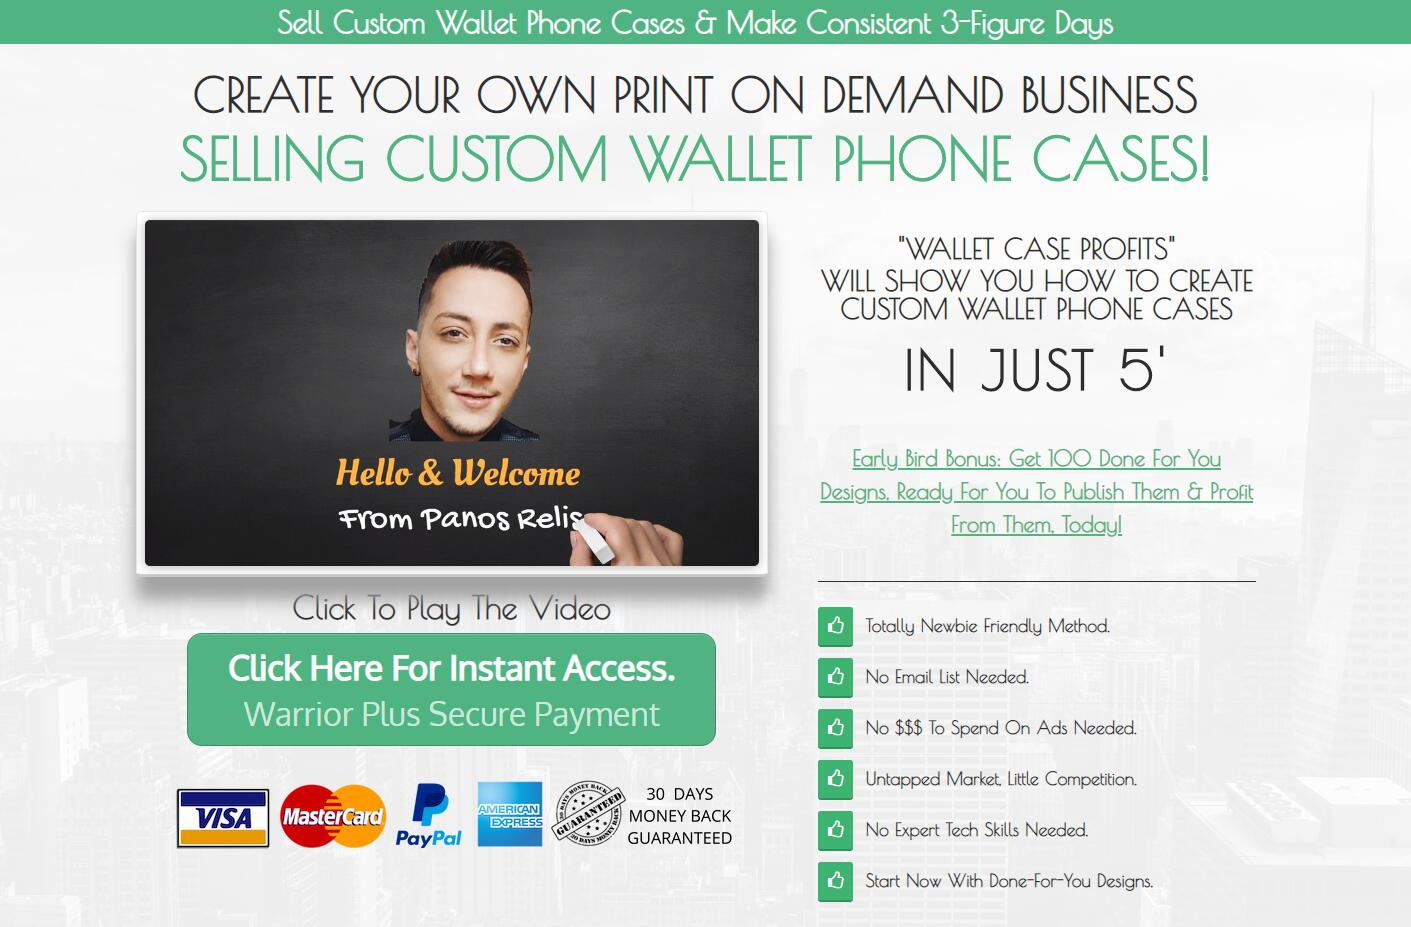 Create your own print on demand business selling custom wallet phone cases.(Wallet Case Profits)